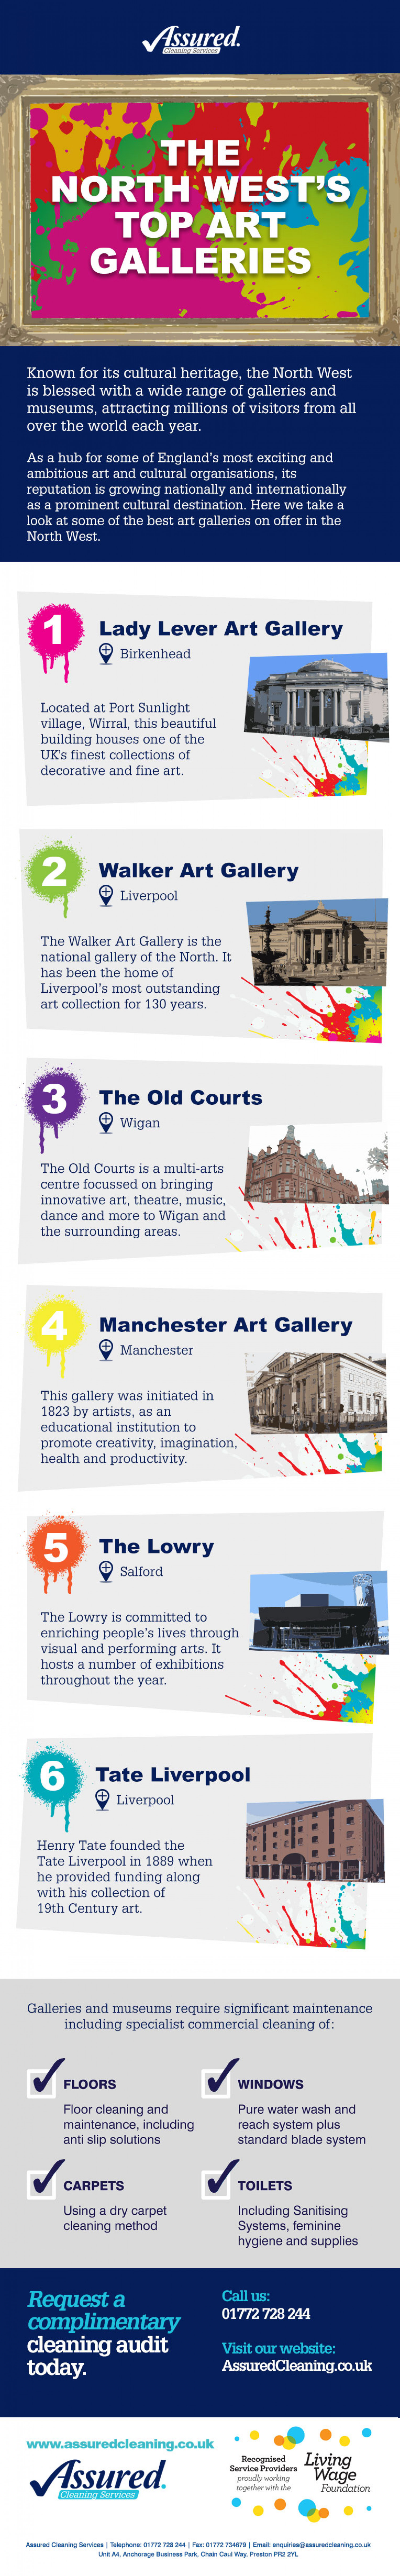 The North West's Top Art Galleries Infographic